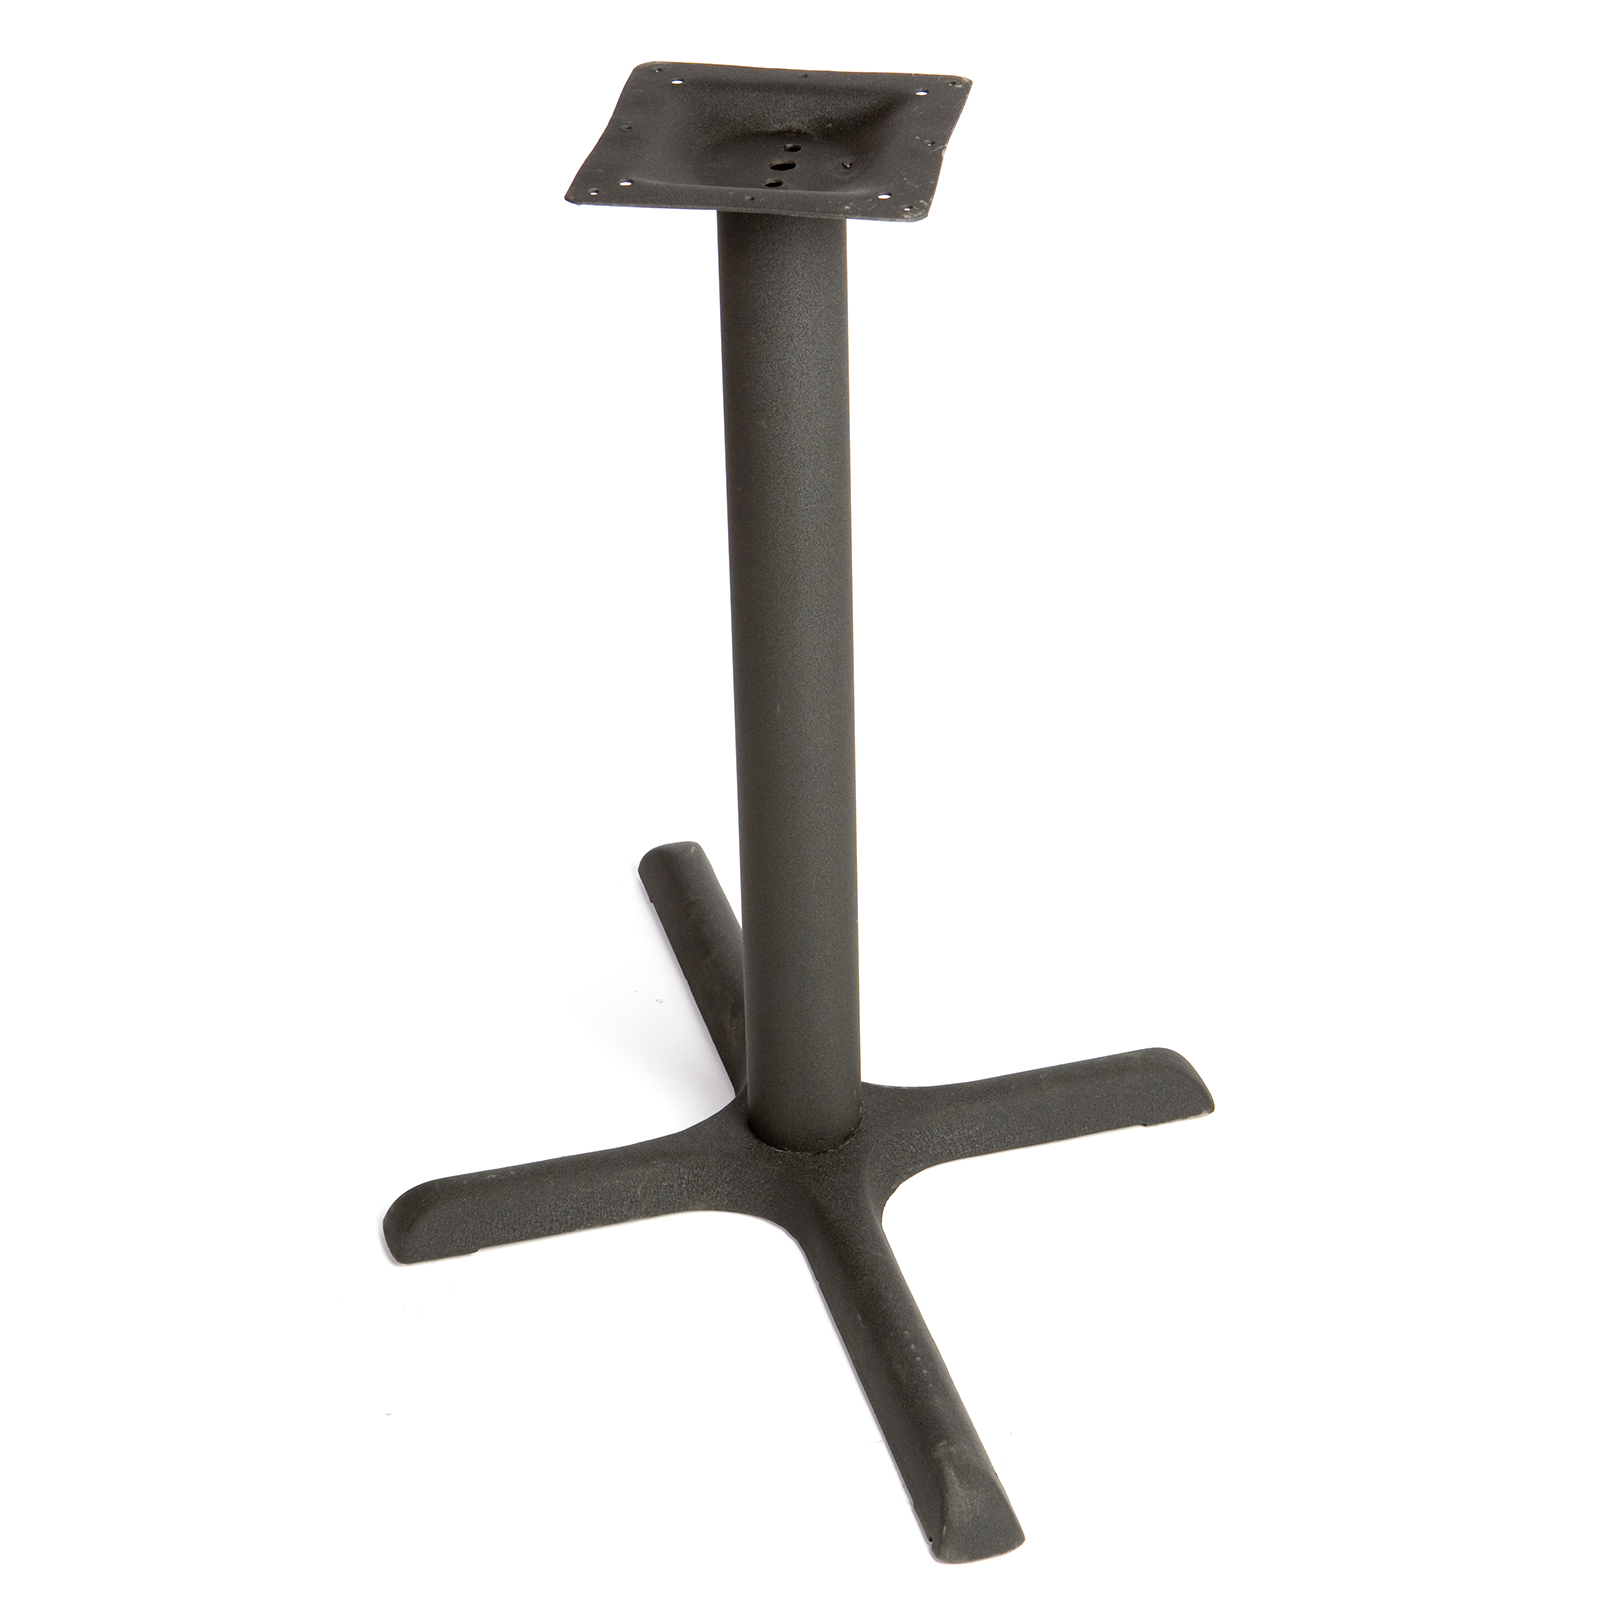 Oak Street OD-B2230-STD table base, metal